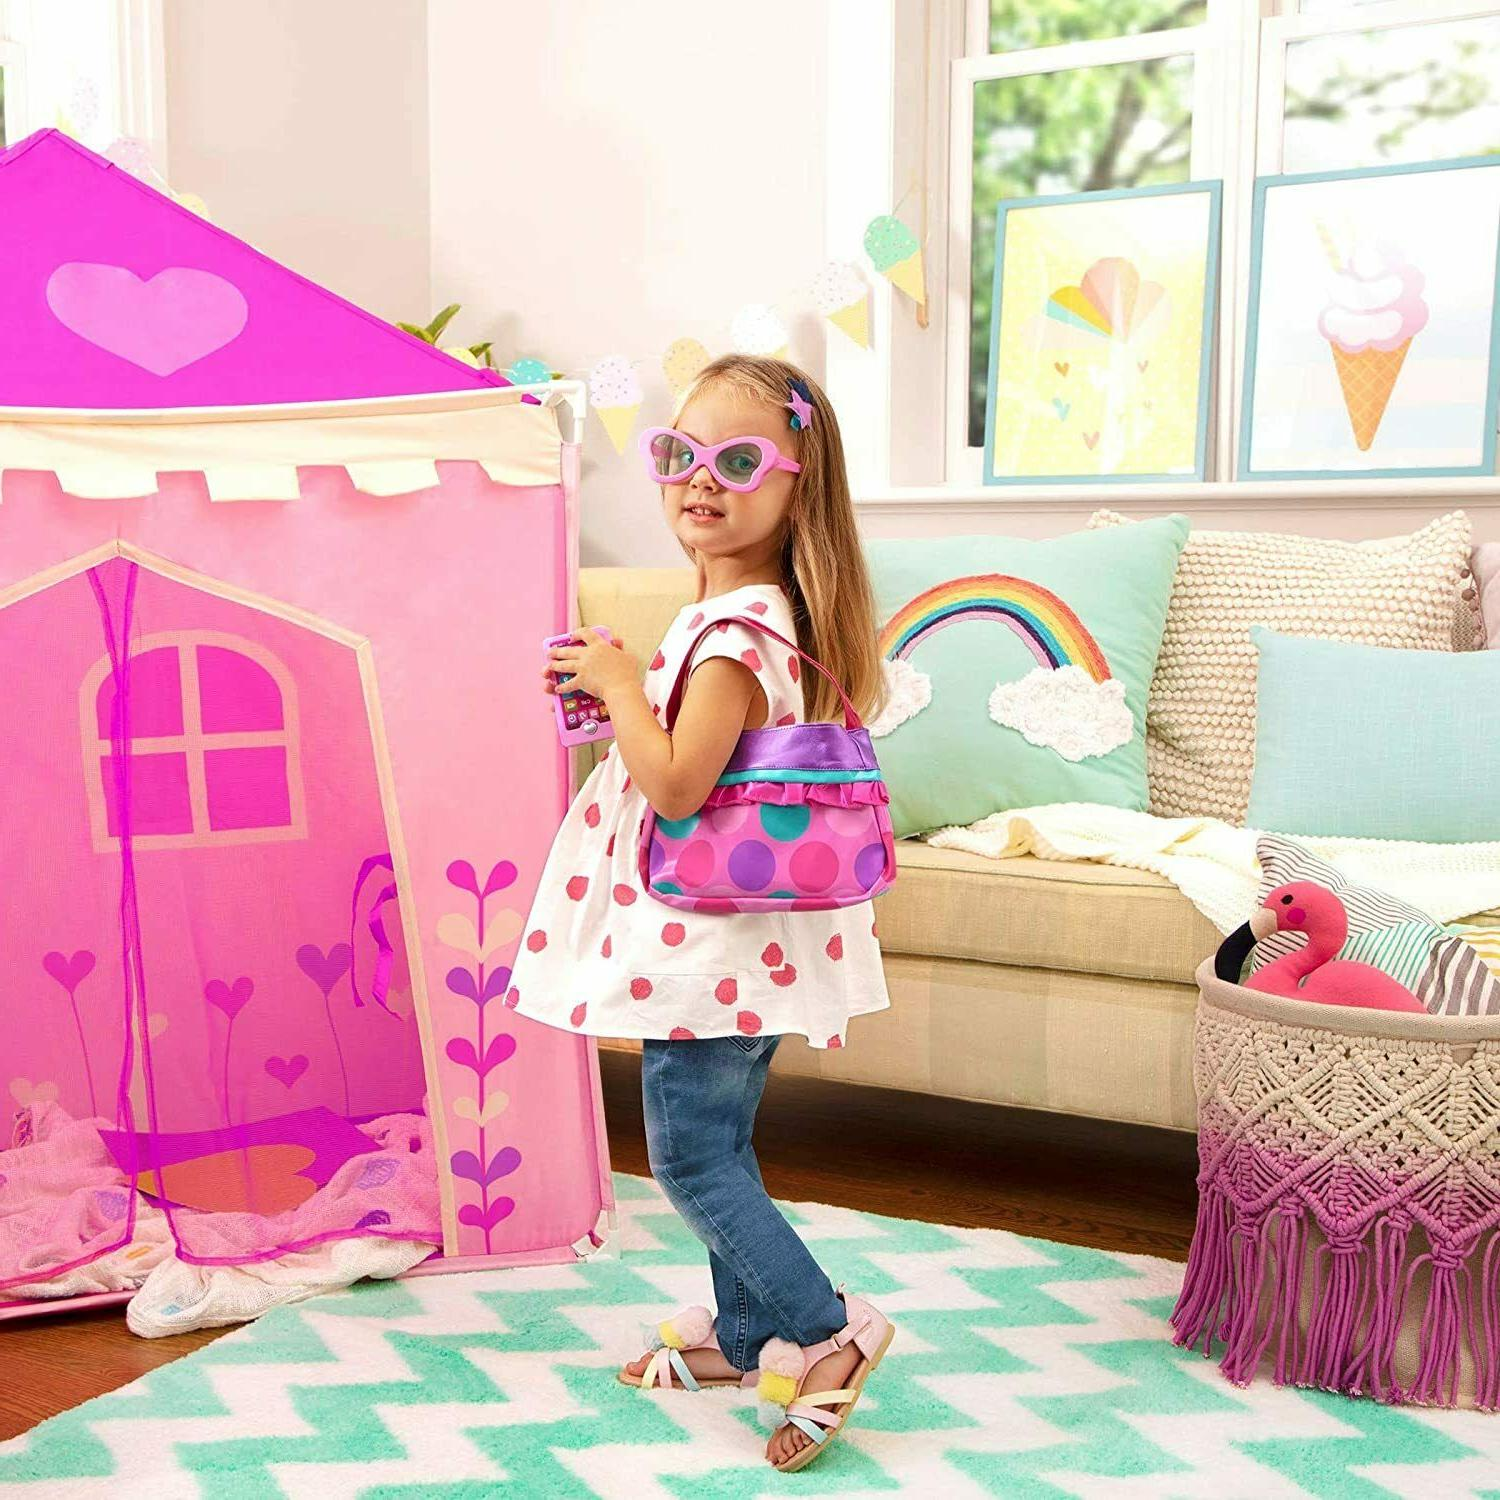 Educational Learning Toys Girls Kids Toddlers Age 3 4 5 6 8 Years New Set